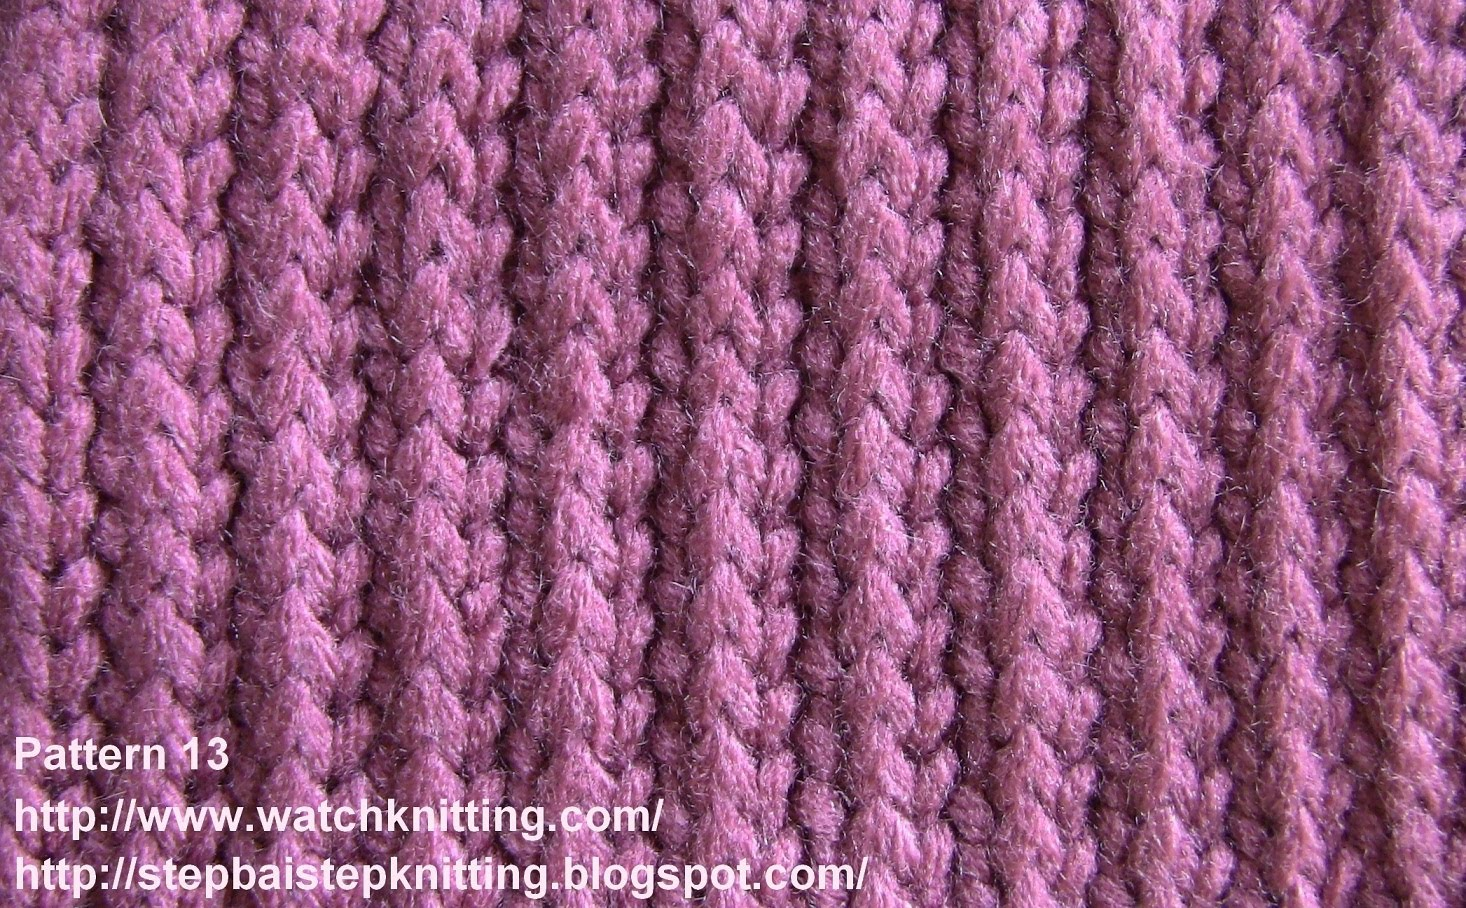 simple knitting patterns (stripe stitch) - free knitting tutorial - watch knitting - pattern 13 - isgbqnv